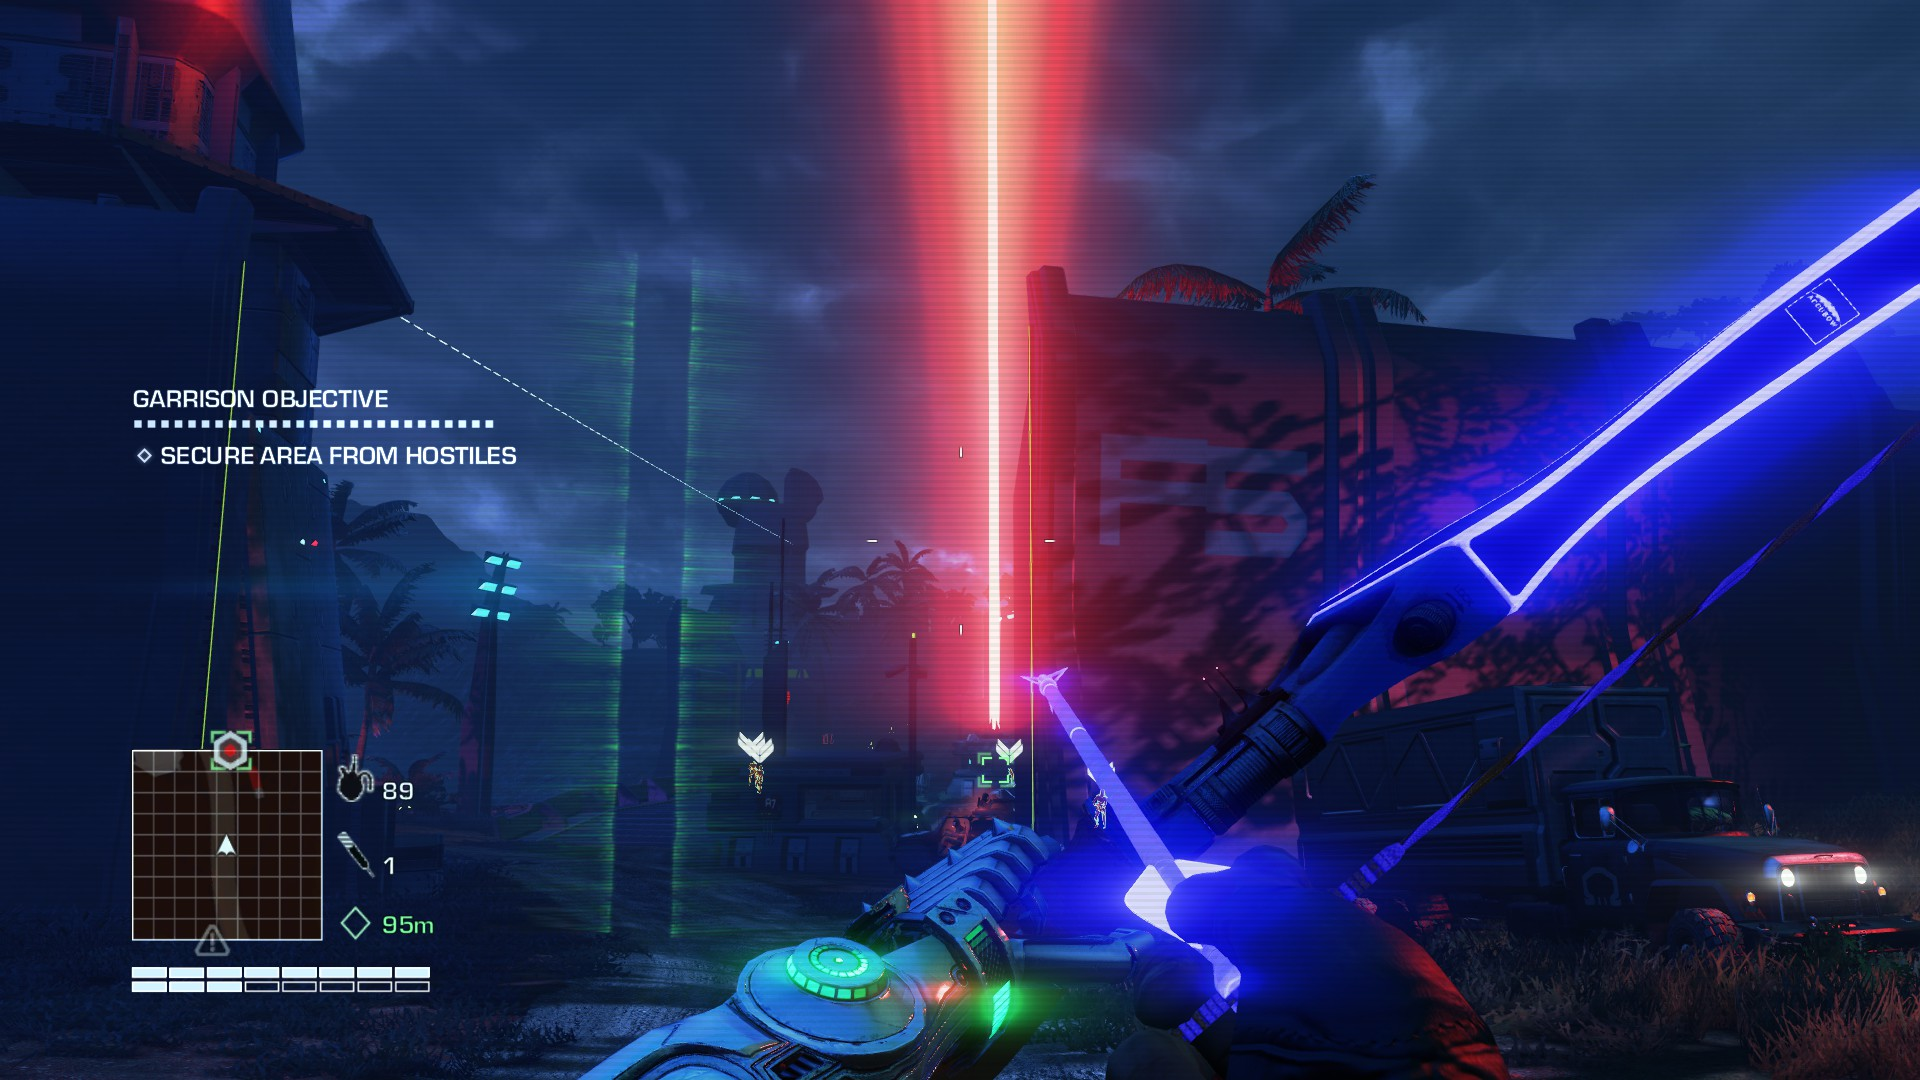 Far Cry 3 Blood Dragon Review Shooting Giant Neon Lizards With Laser Guns Has Never Been More Fun Pixel Related